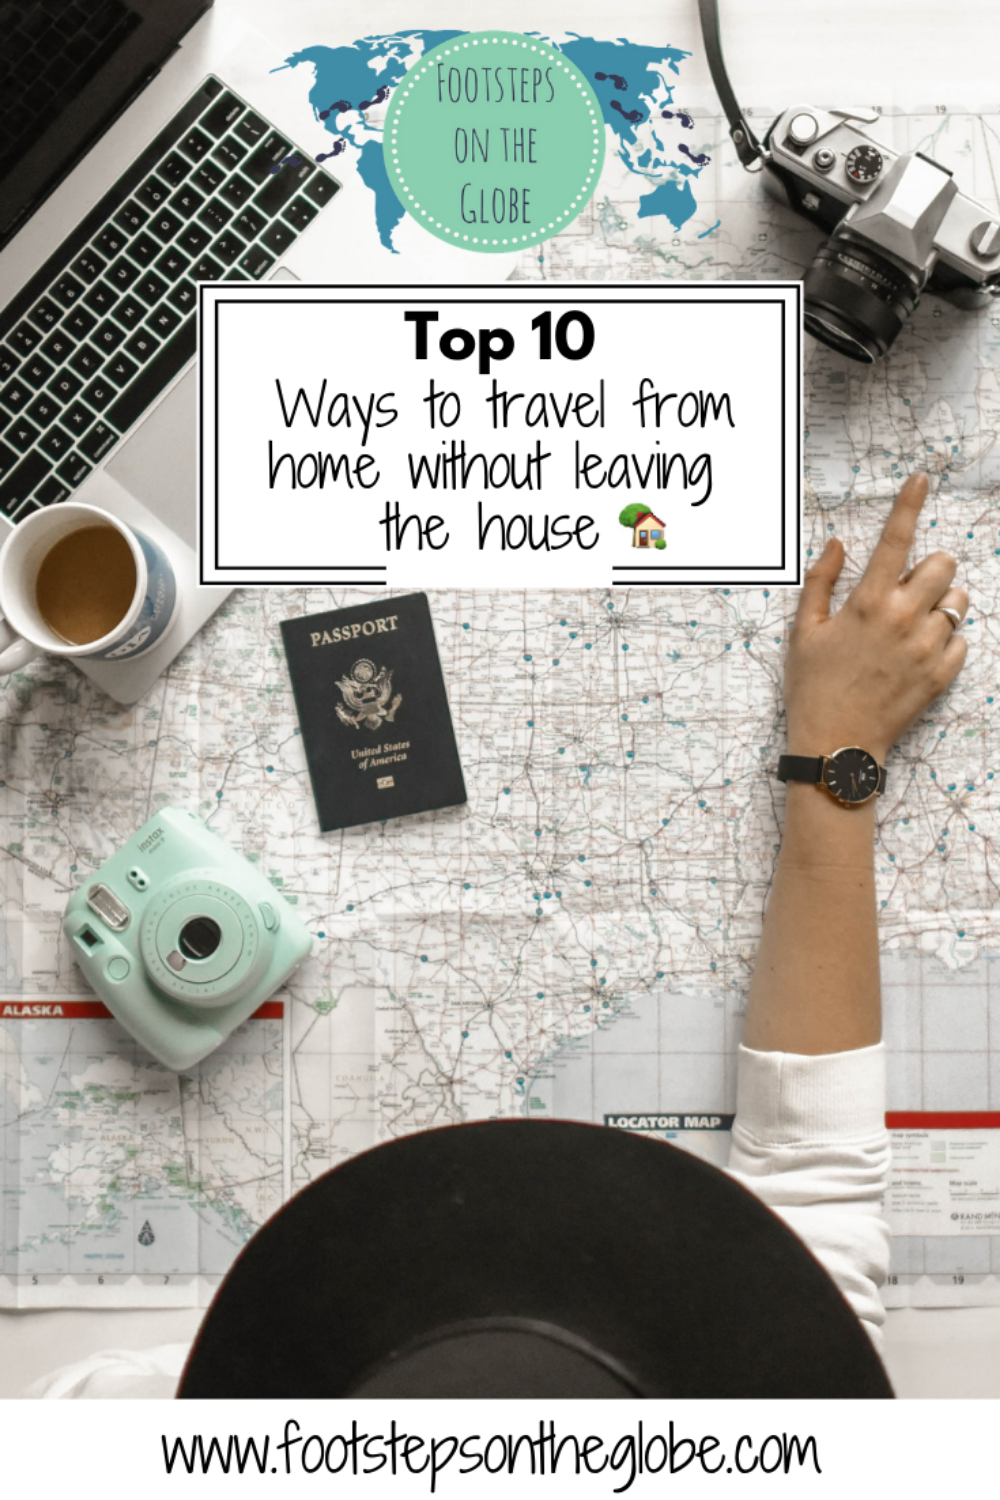 Top 10 ways to travel from home without leaving the house pinterest imgae